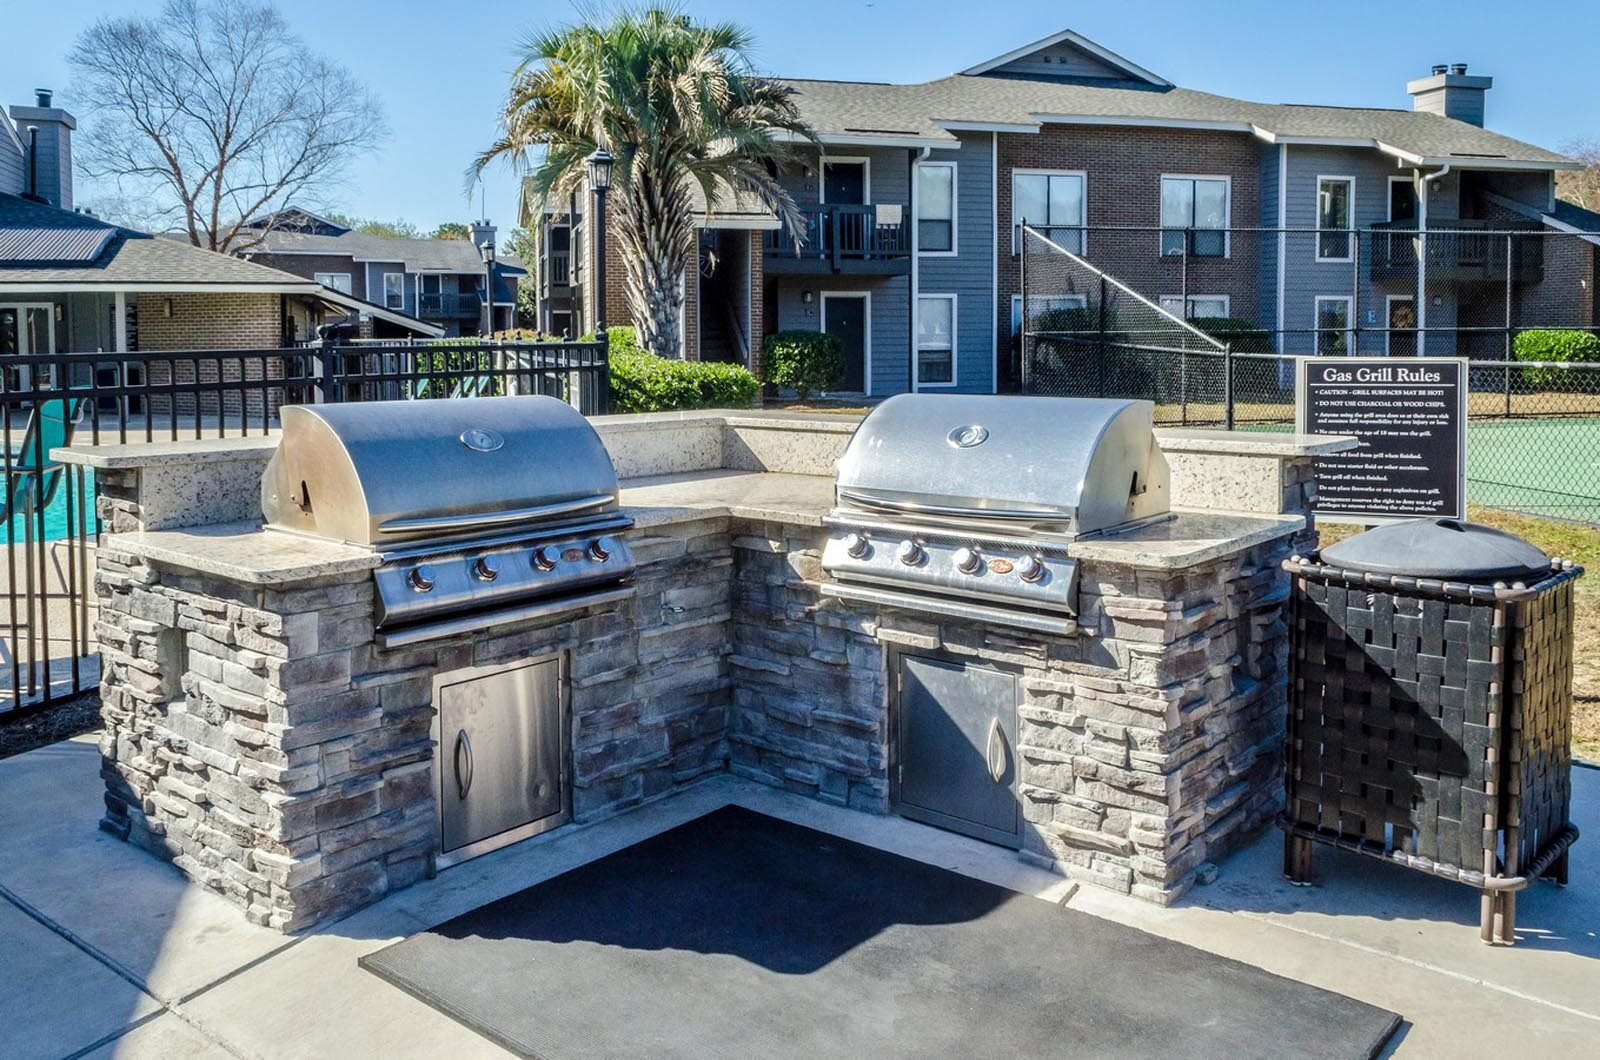 Outdoor Grilling Station at Ashley River Apartments in Charleston, SC